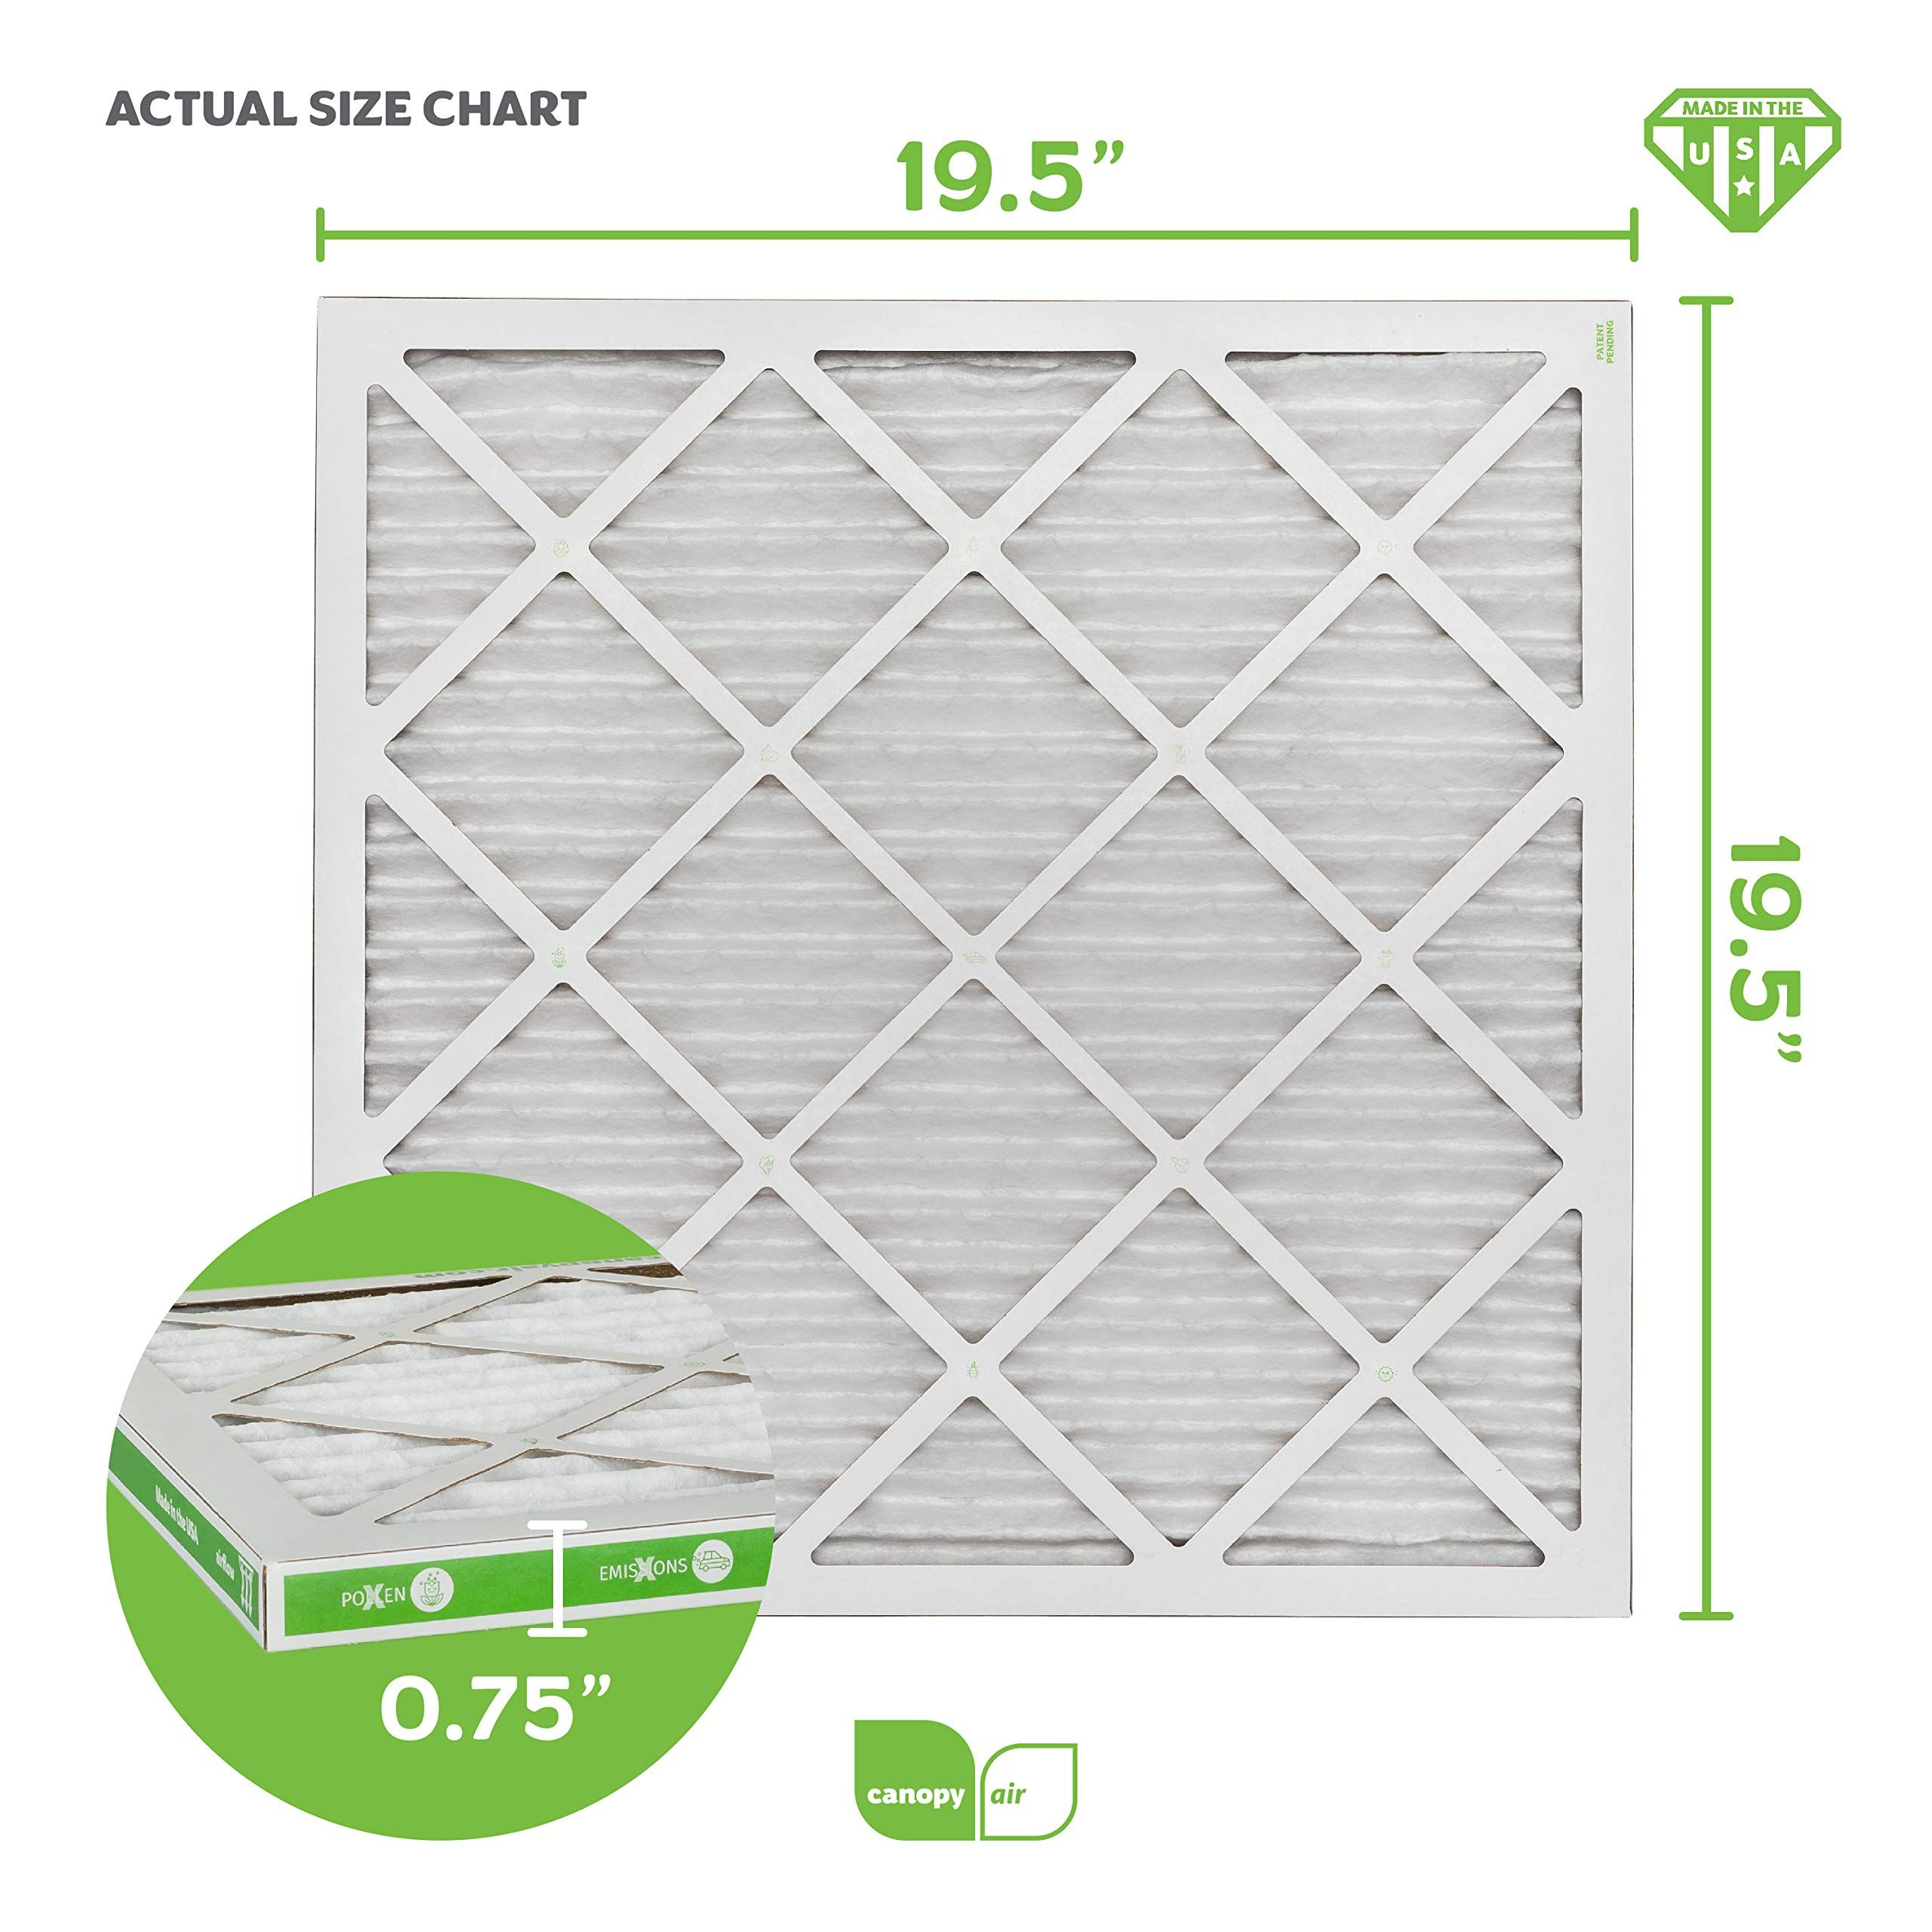 Canopy Air 20x20x1, Allergen AC Furnace Air Filter, MERV